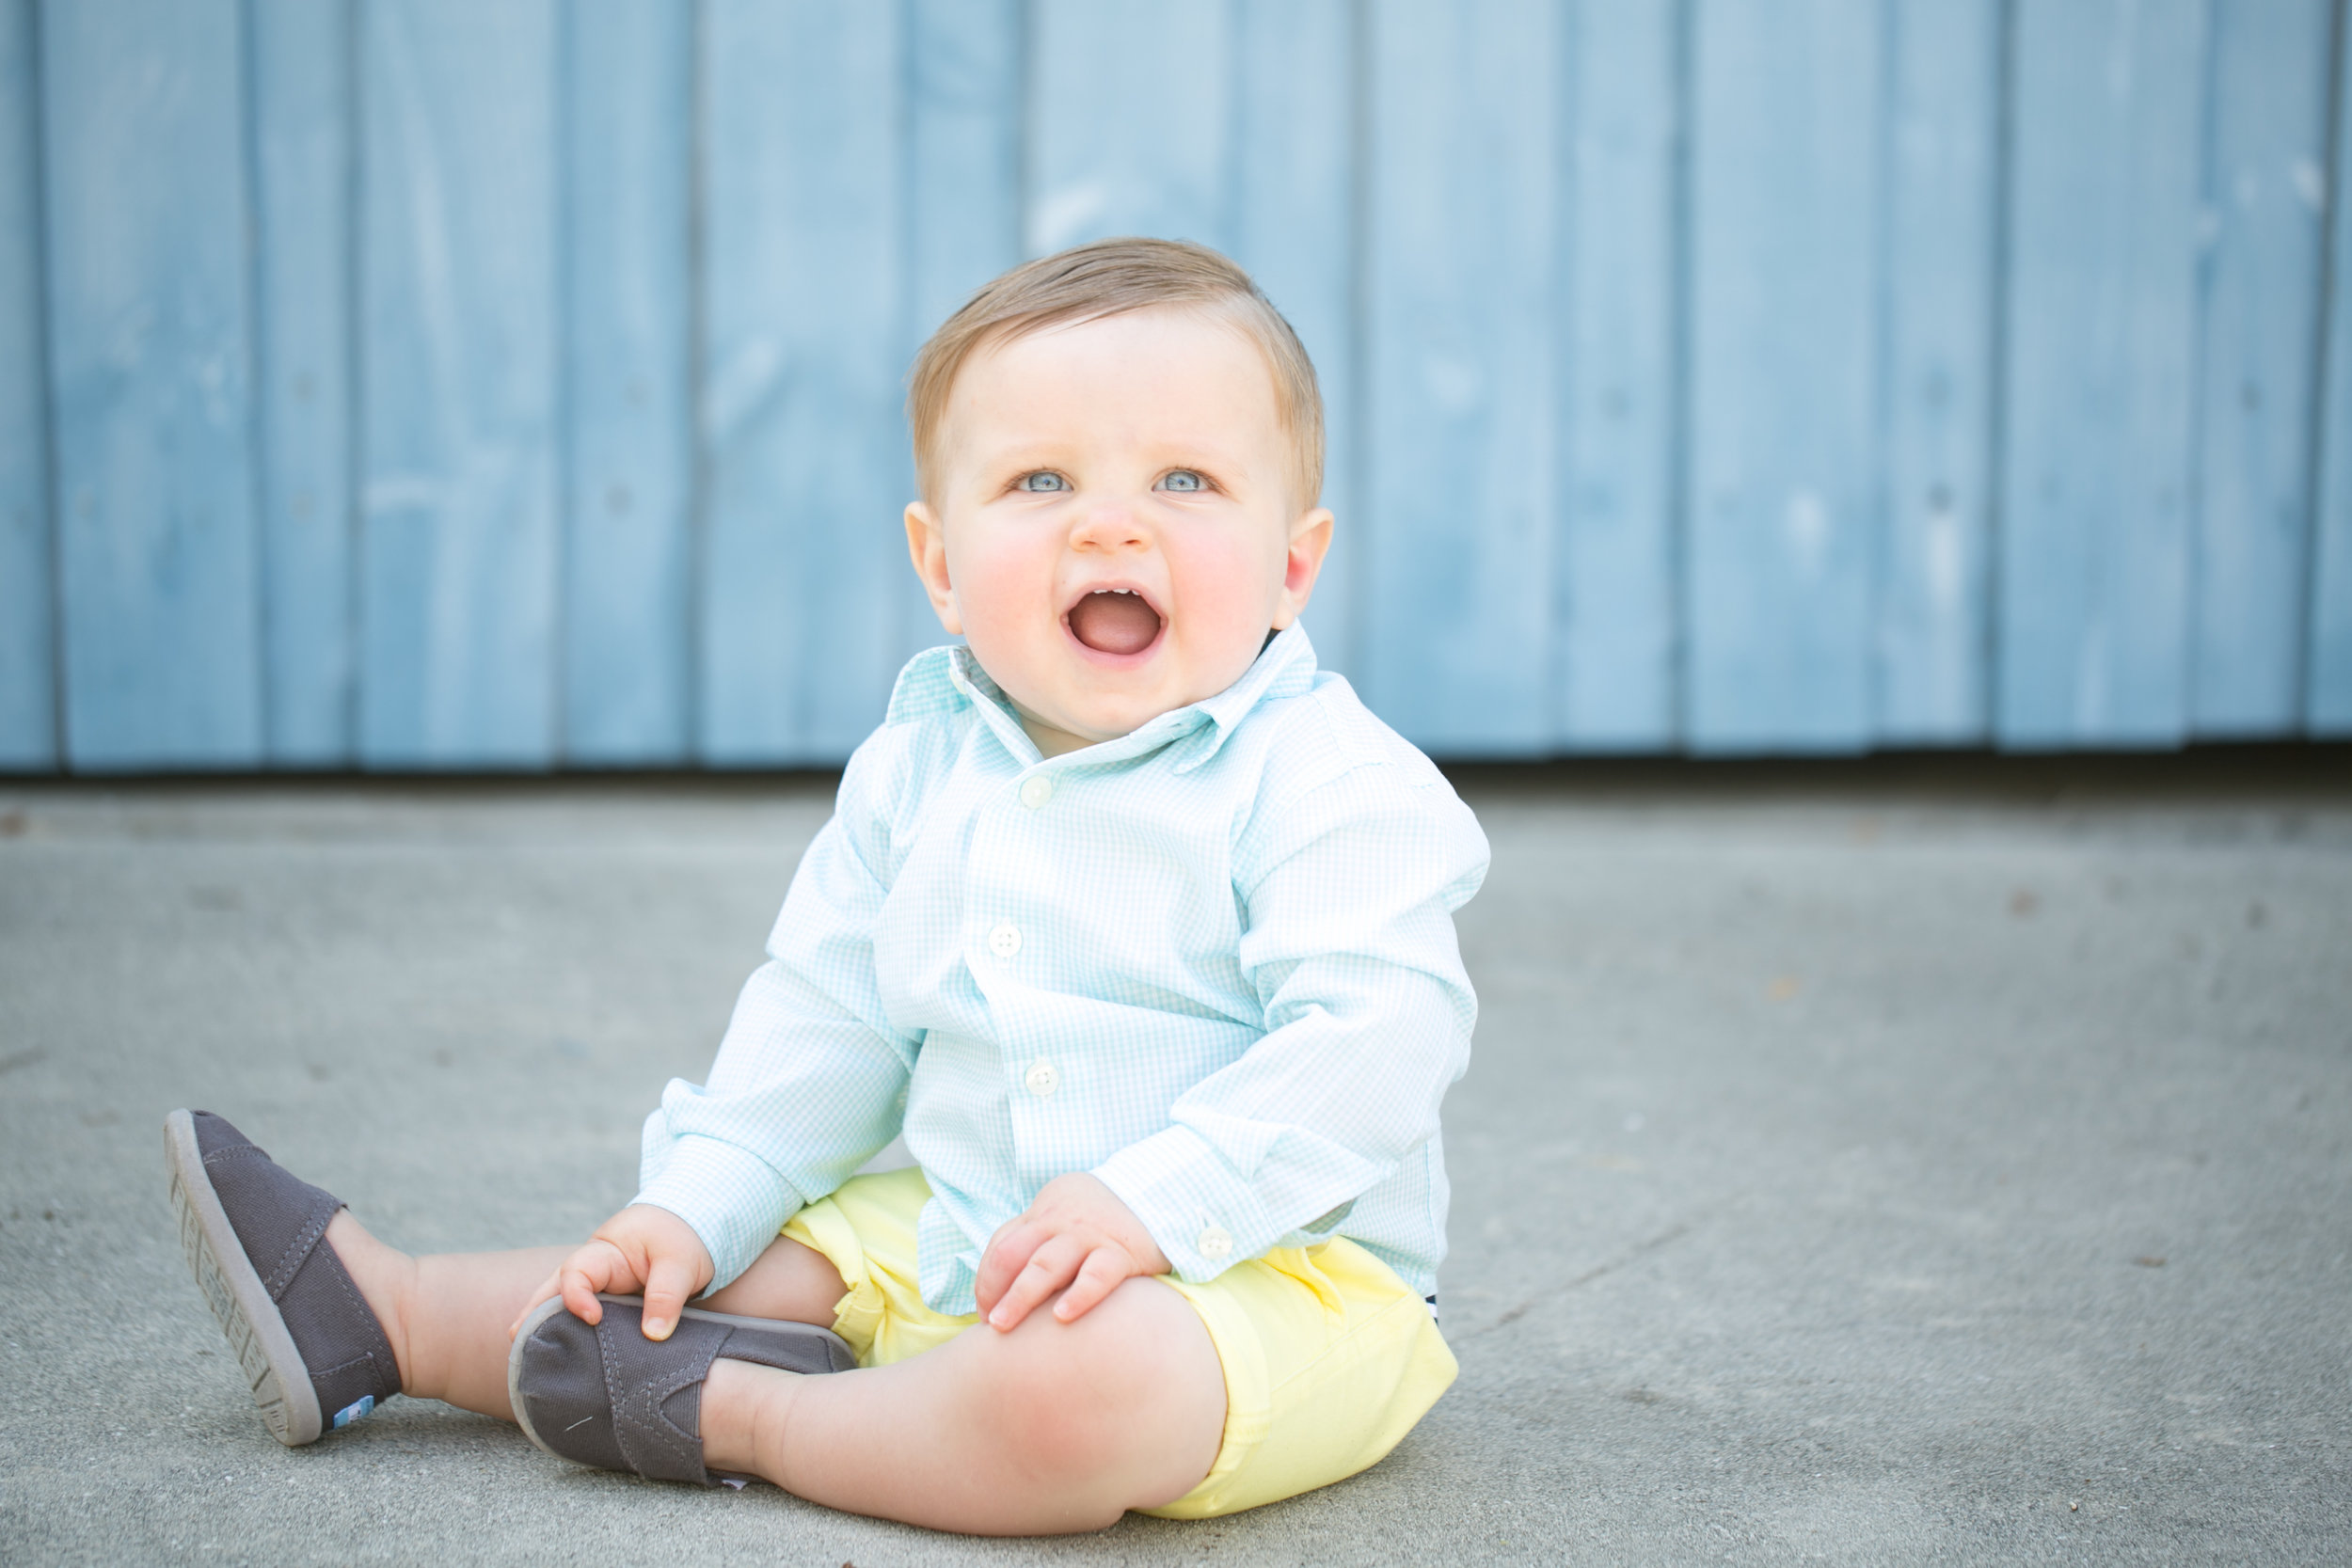 3_23_17 Tag 1 Year Old Tampa Portrait Session 10.jpg